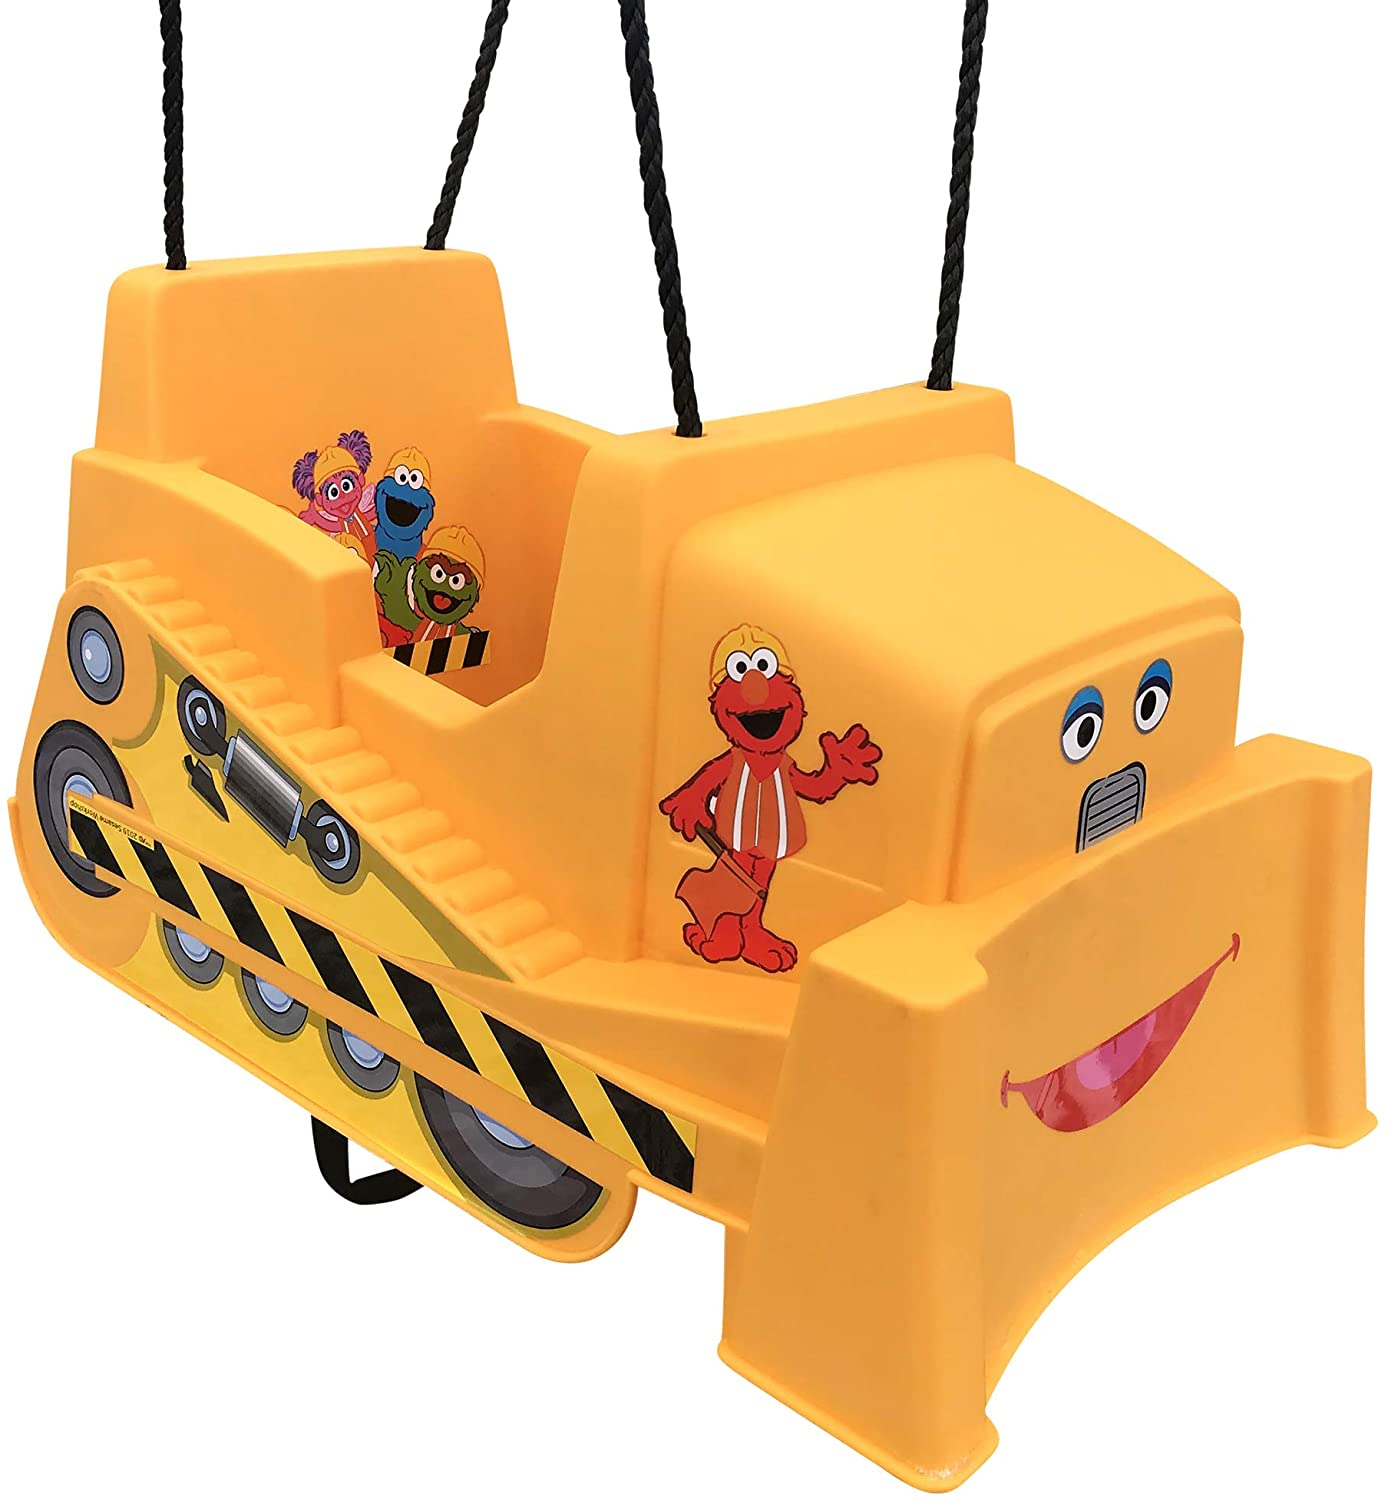 M & M Sales Enterprises Sesame Street Dozer Toddler Swing